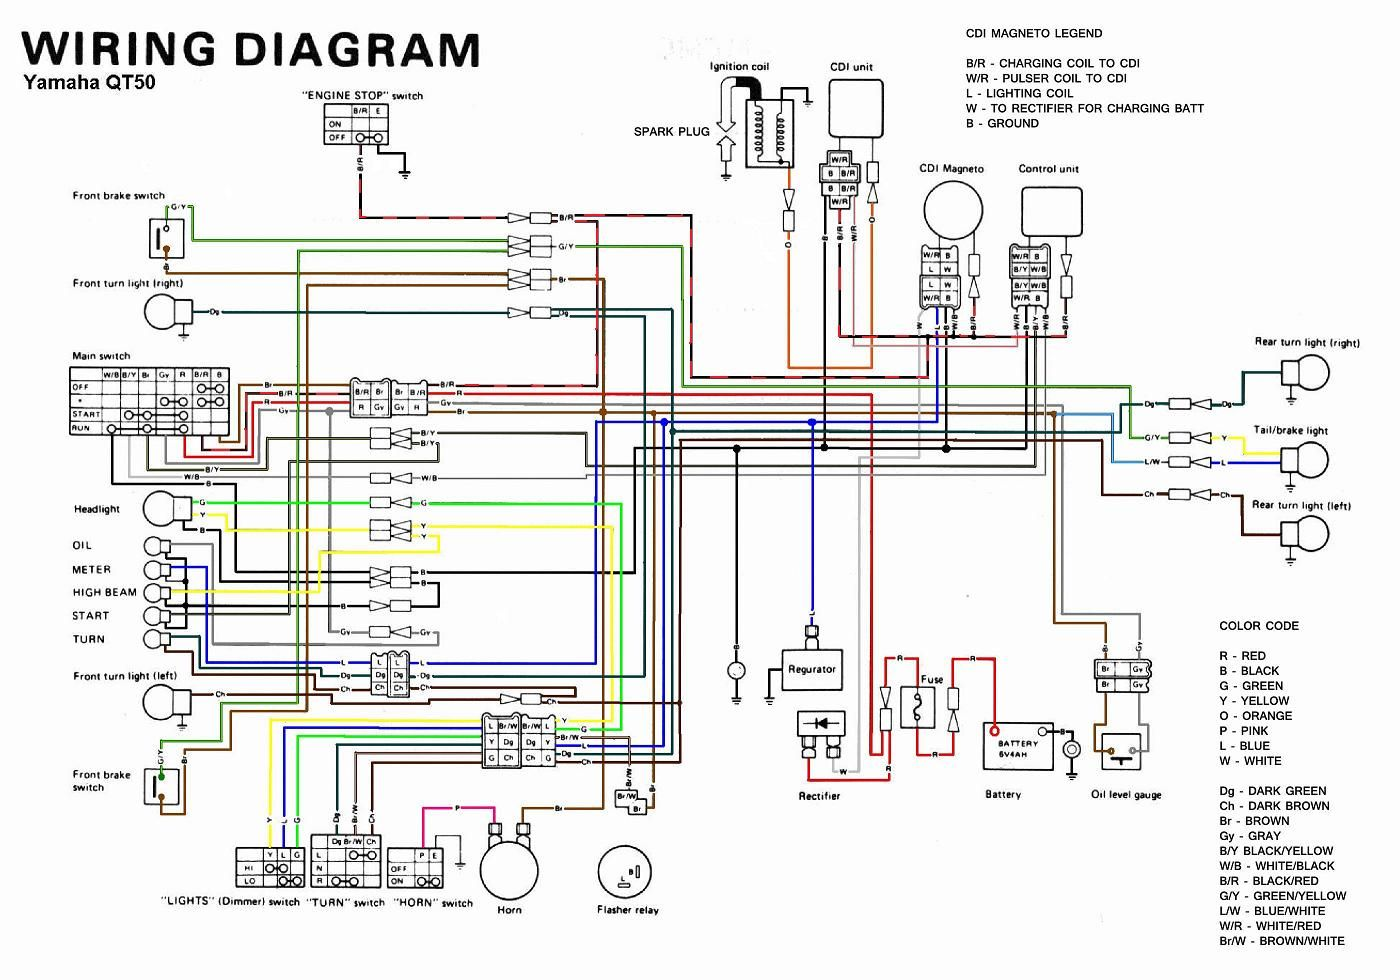 medium resolution of yamaha v 80 wiring diagram schematic diagram databaseyamaha dt 80 wiring diagram wiring diagrams favorites yamaha